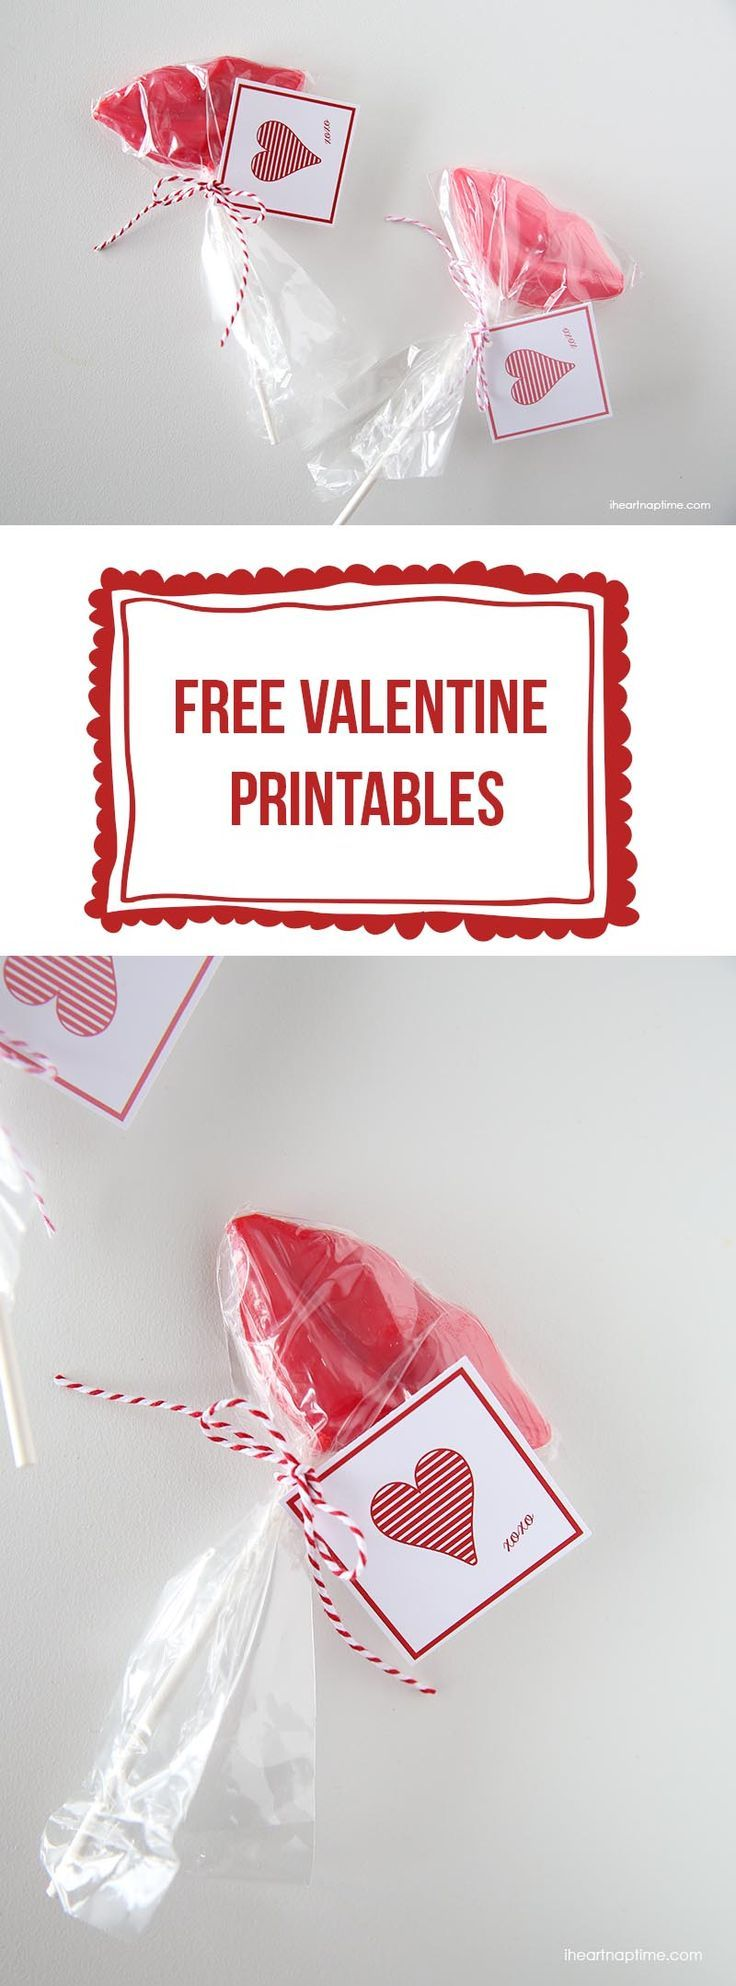 Cool Party Dresses Free printable Valentine's day tags on iheartnaptime.com ...cute and easy way to... Check more at http://24myshop.ga/fashion/party-dresses-free-printable-valentines-day-tags-on-iheartnaptime-com-cute-and-easy-way-to/